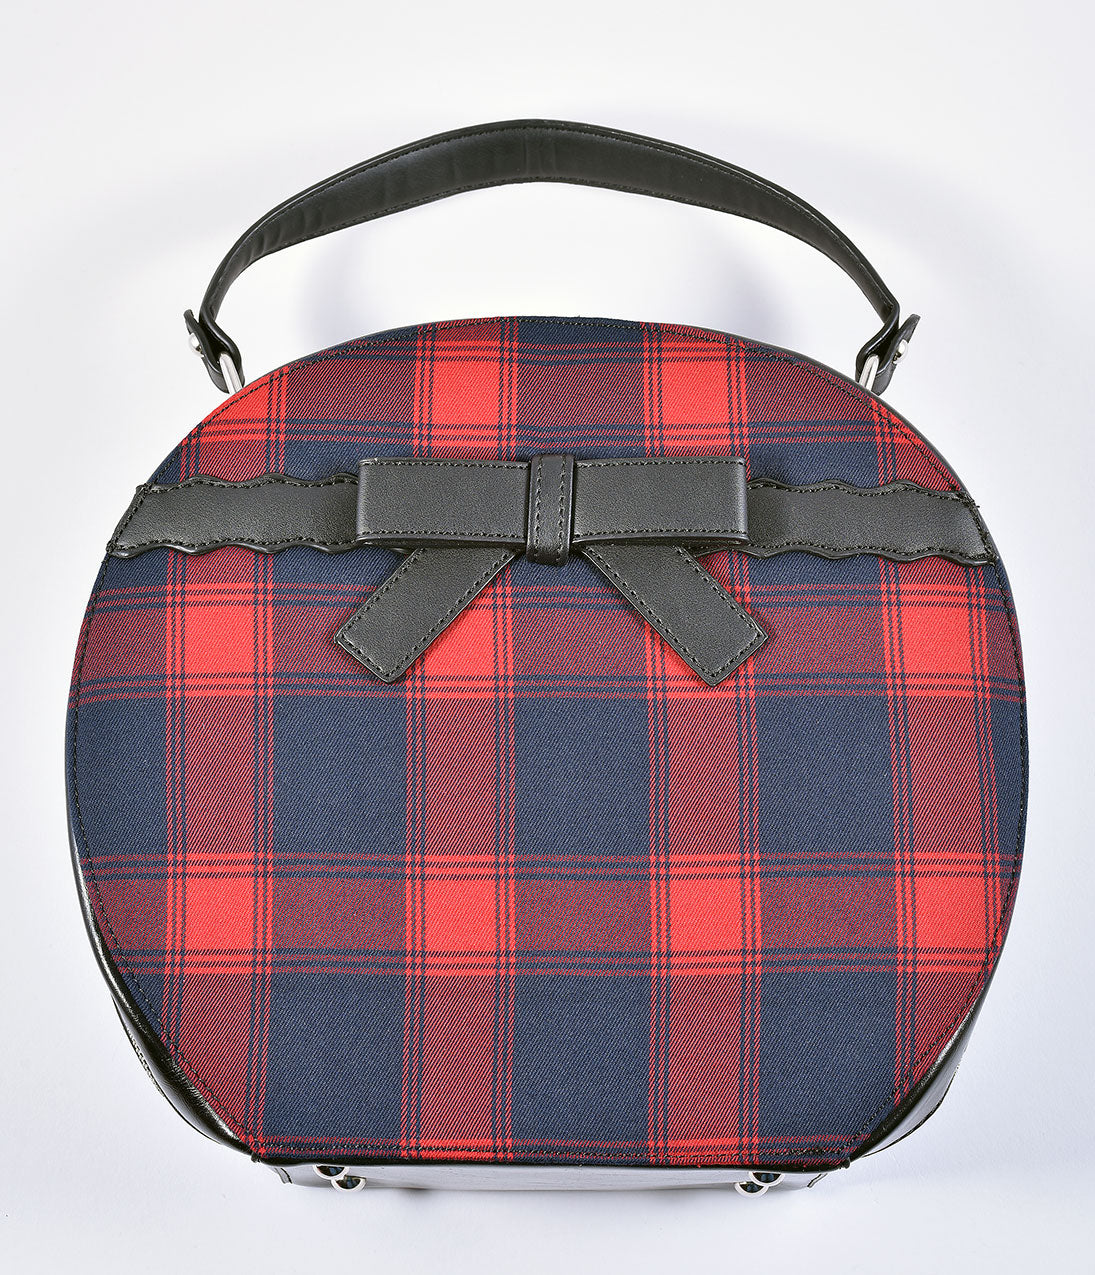 Vintage & Retro Handbags, Purses, Wallets, Bags Voodoo Vixen Red  Navy Tartan Round Hat Box Purse $64.00 AT vintagedancer.com